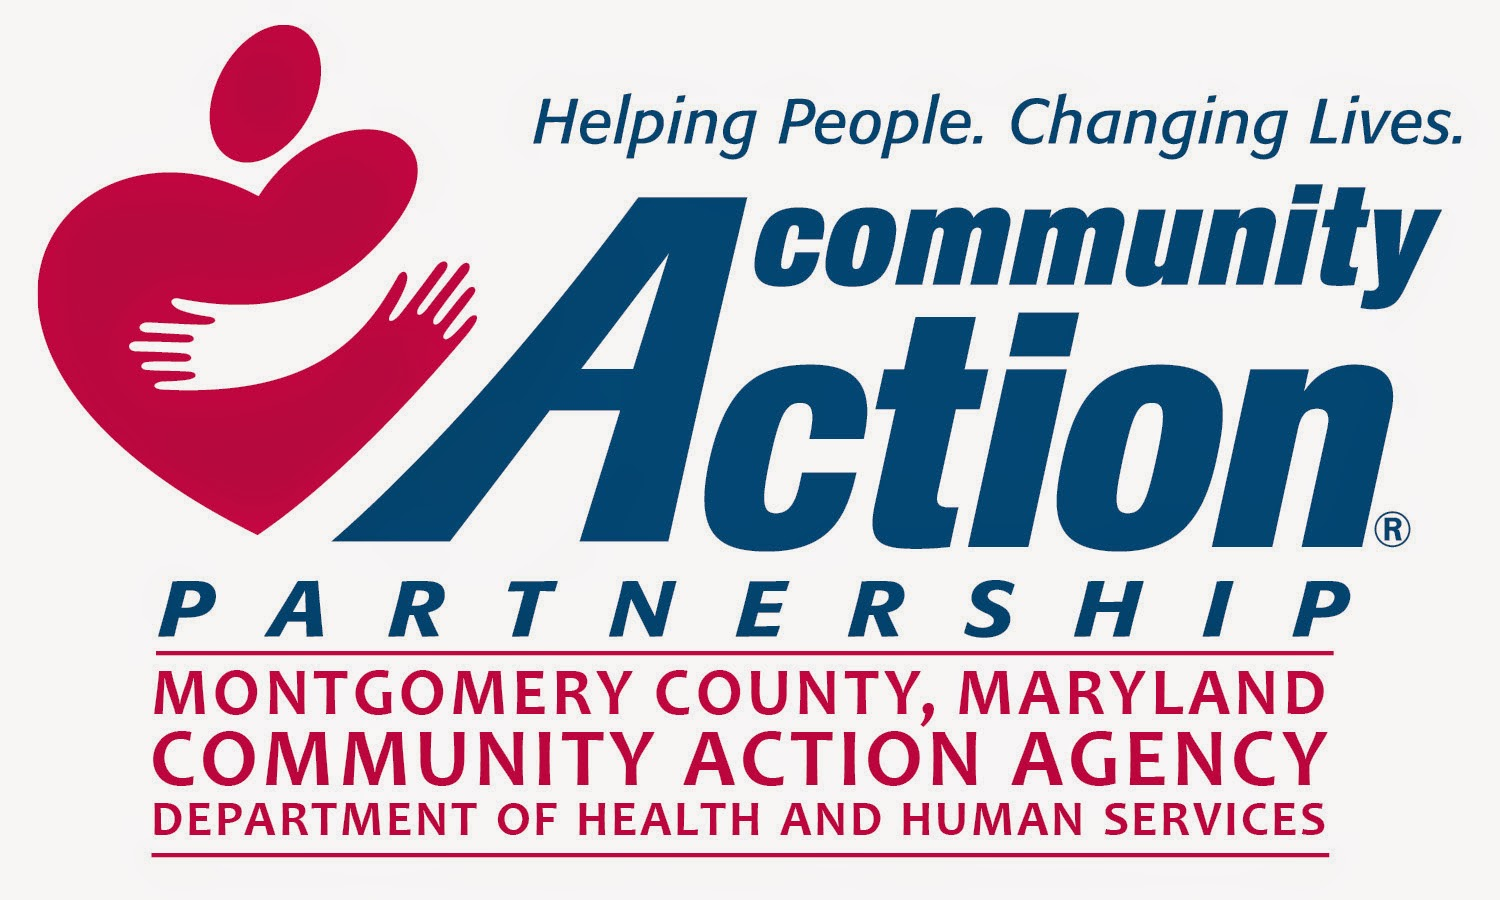 Montgomery County Community Action